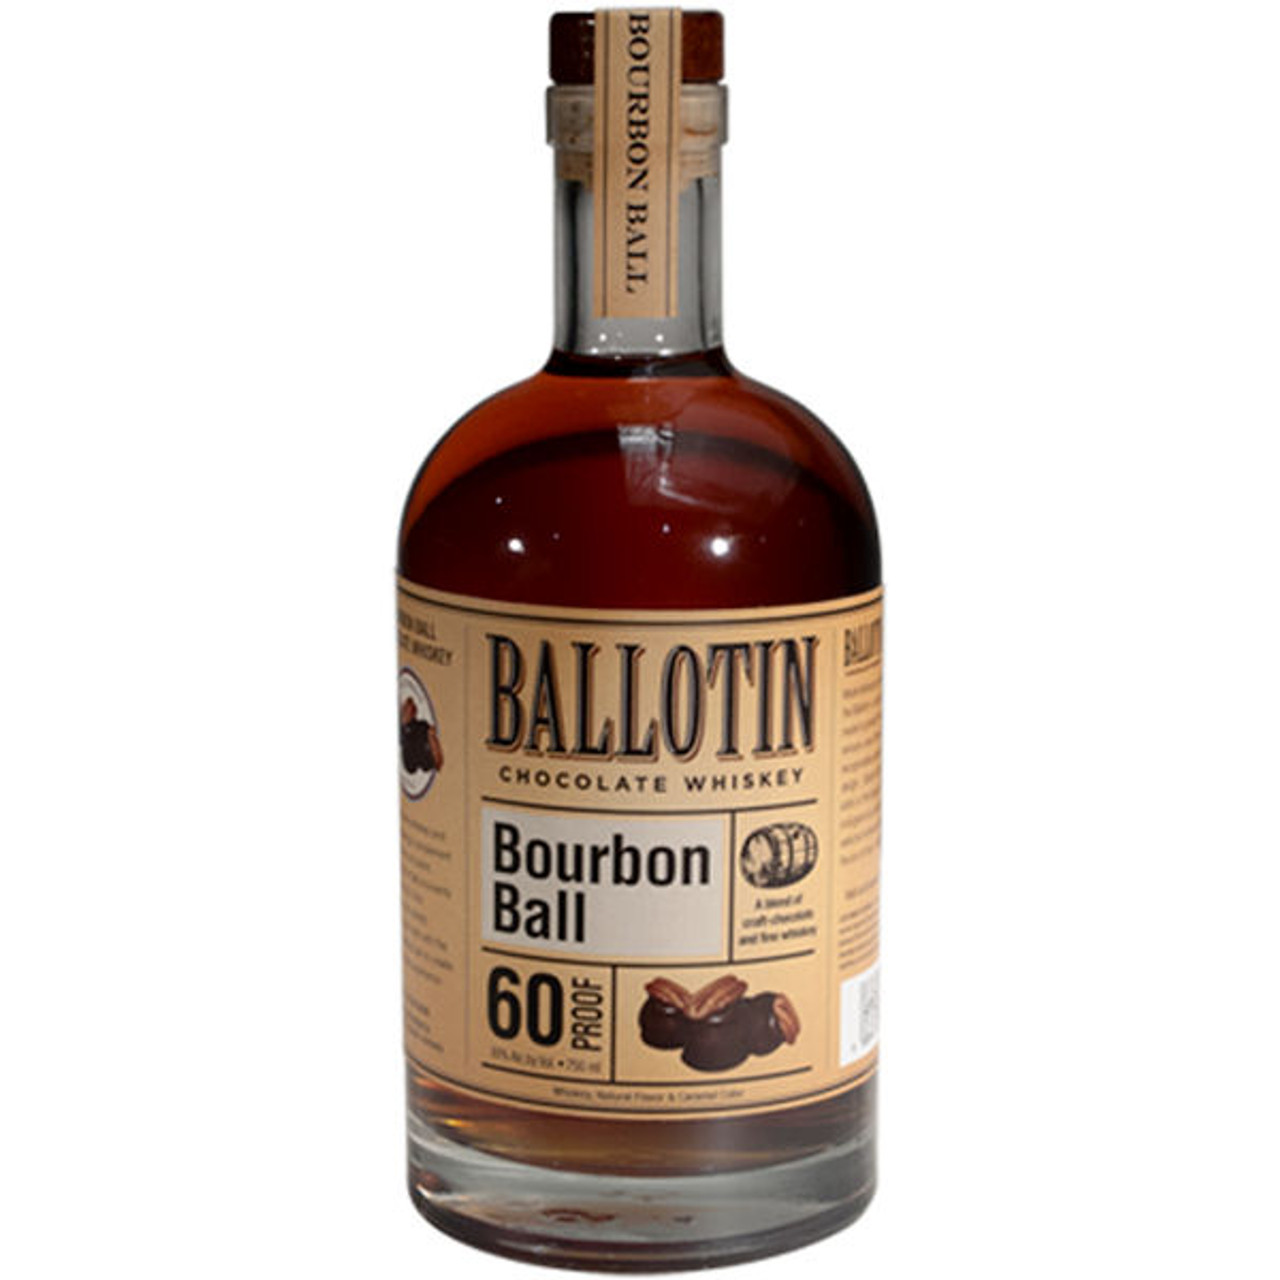 Ballotin Bourbon Ball Chocolate Whiskey 750ml